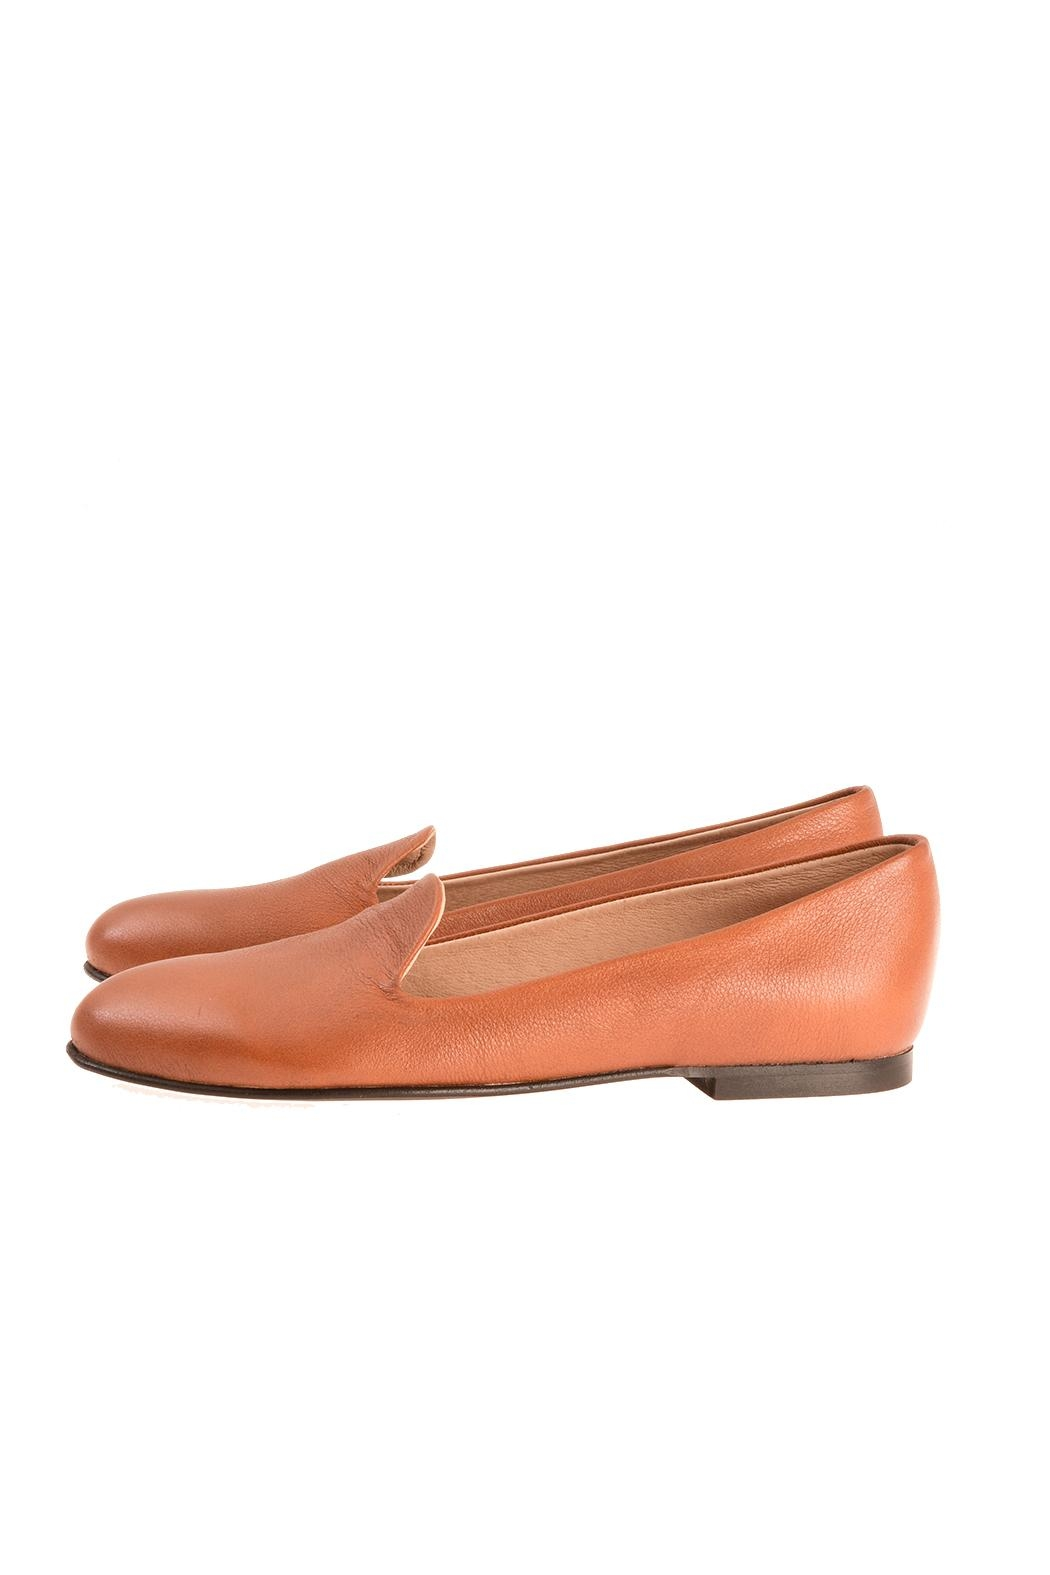 Bottega Bash Camel Leather Loafers - Main Image